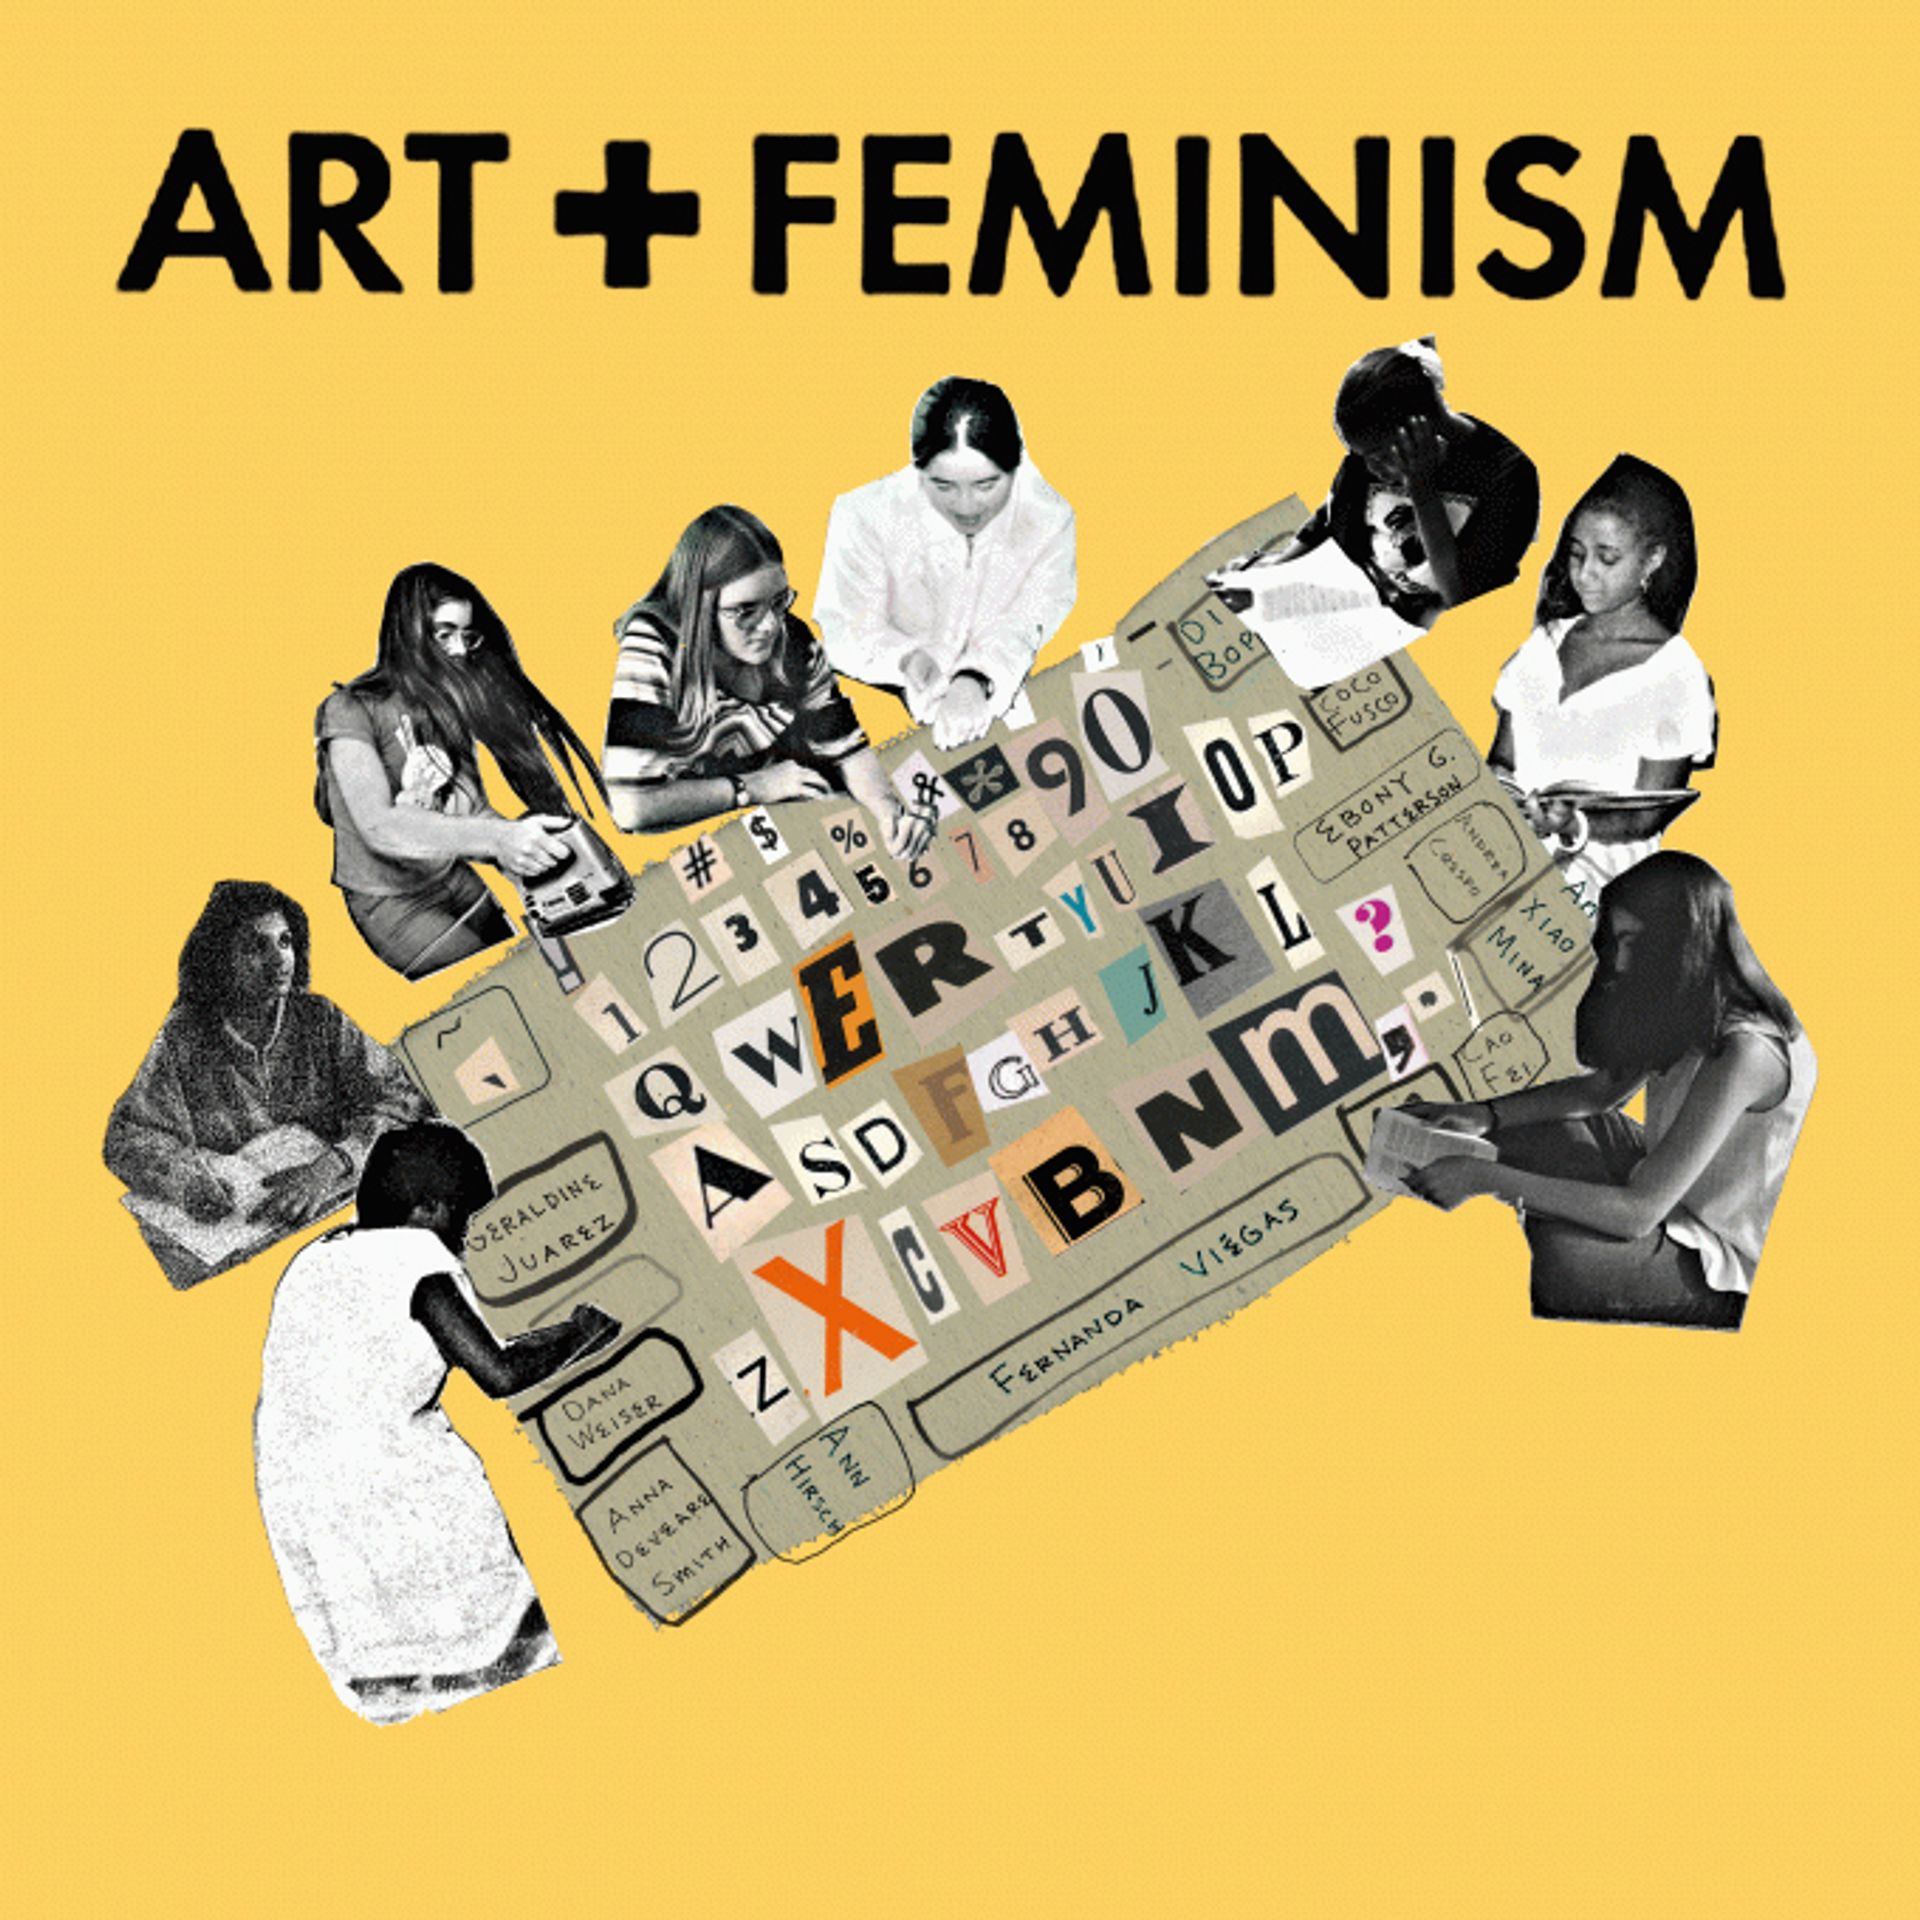 Art+Feminism's annual edit-a-thon is expanding in California